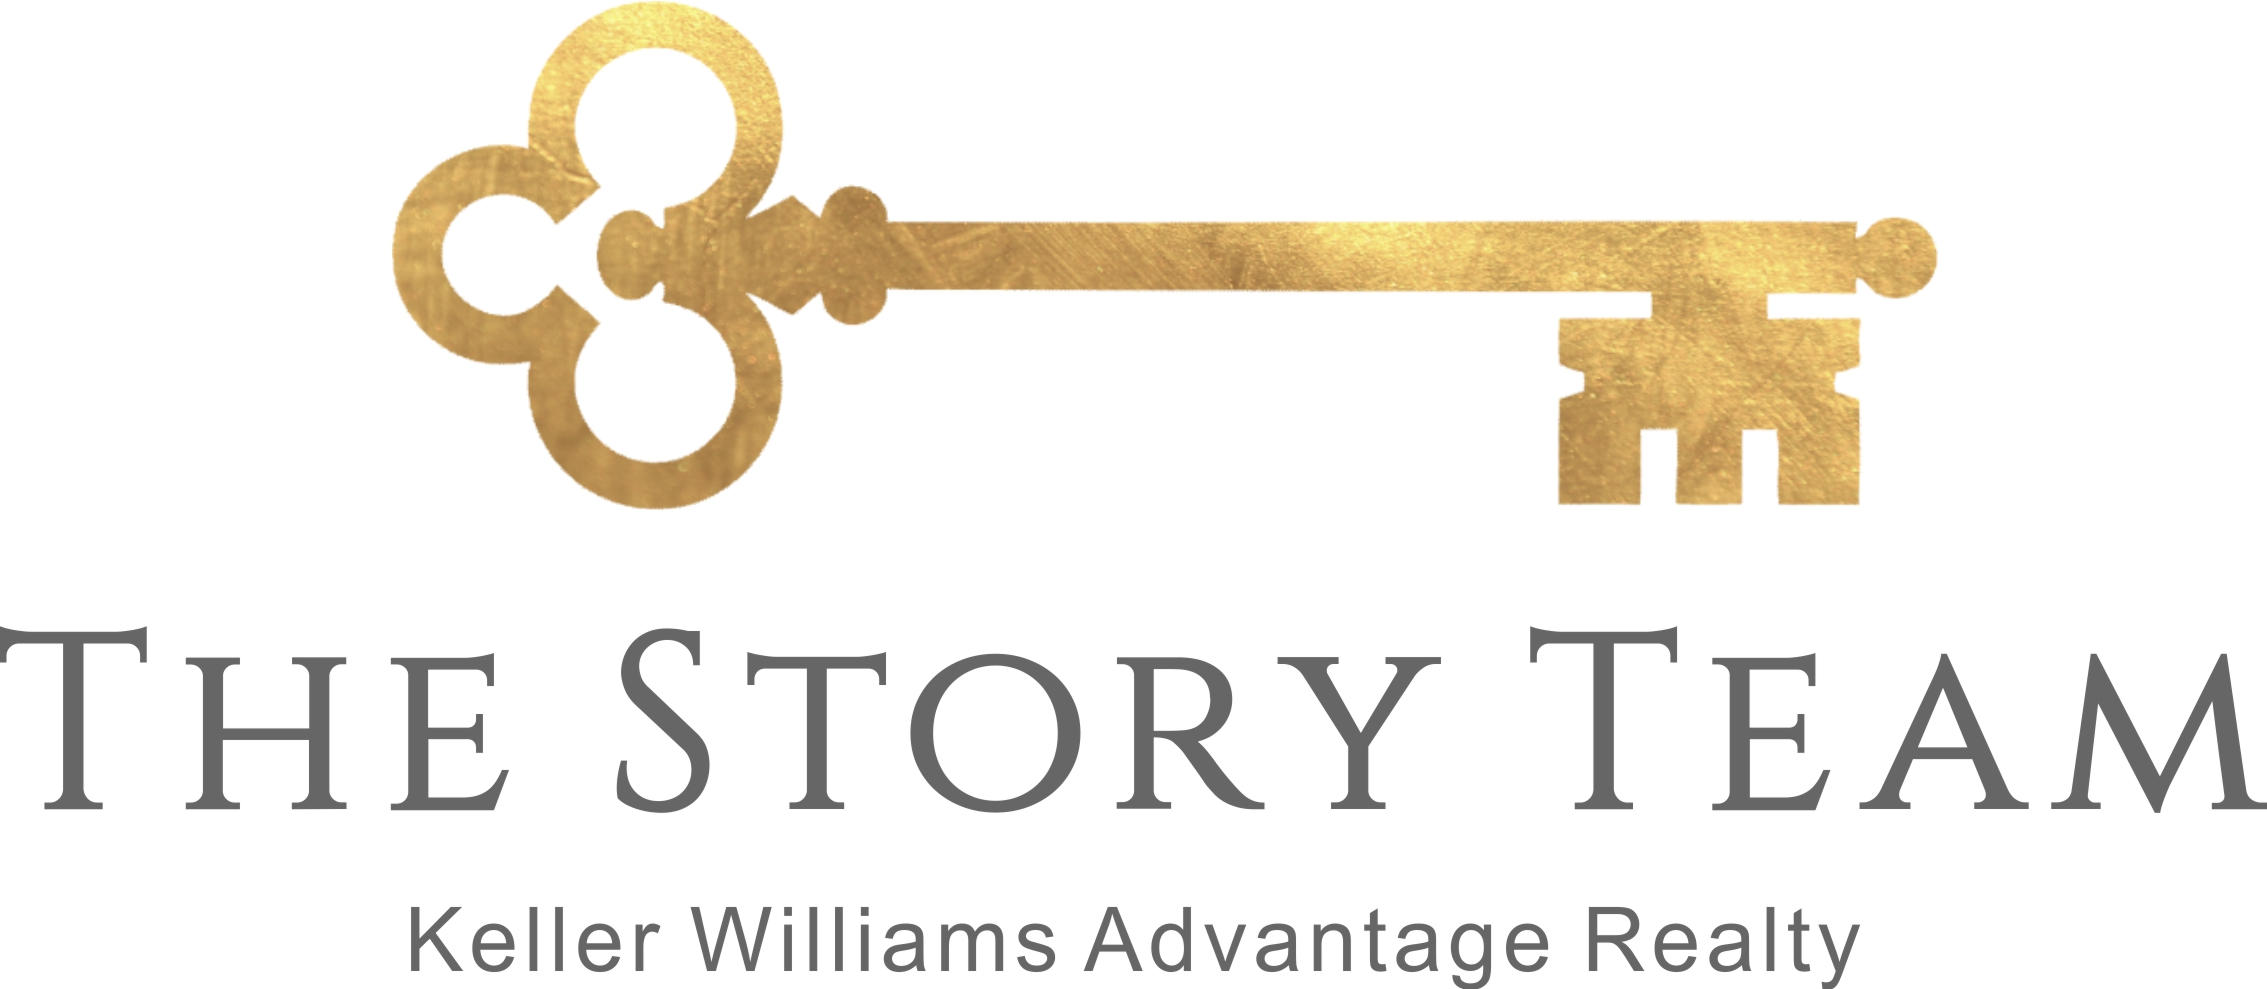 The Story Team | Keller Williams Advantage Realty